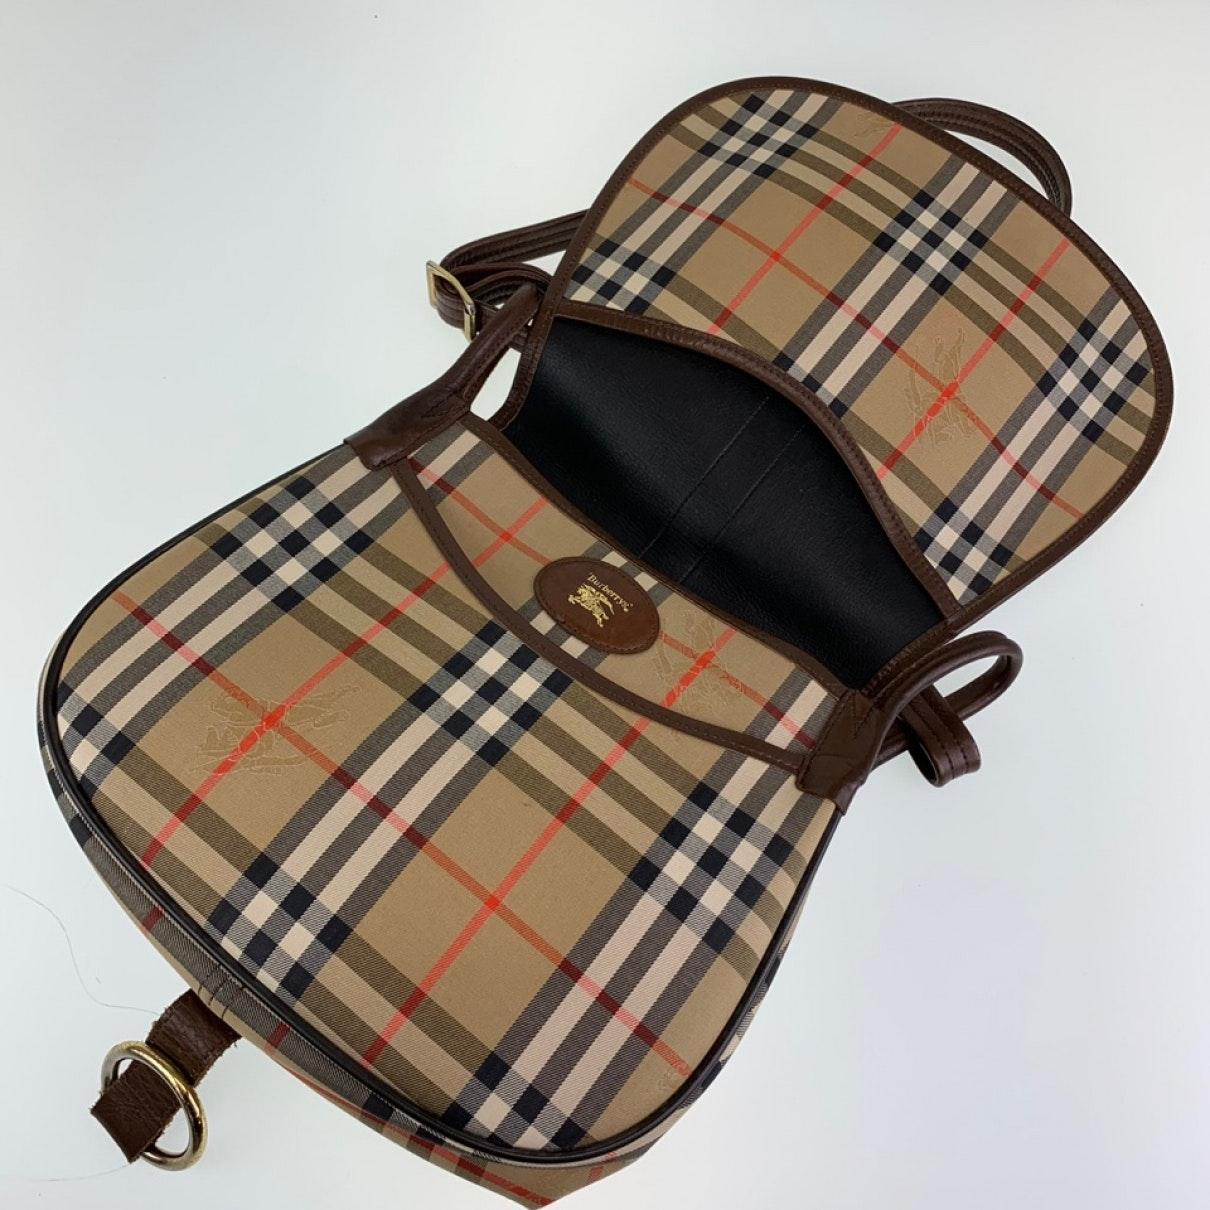 Sac à main en Toile Marron Burberry WcUE